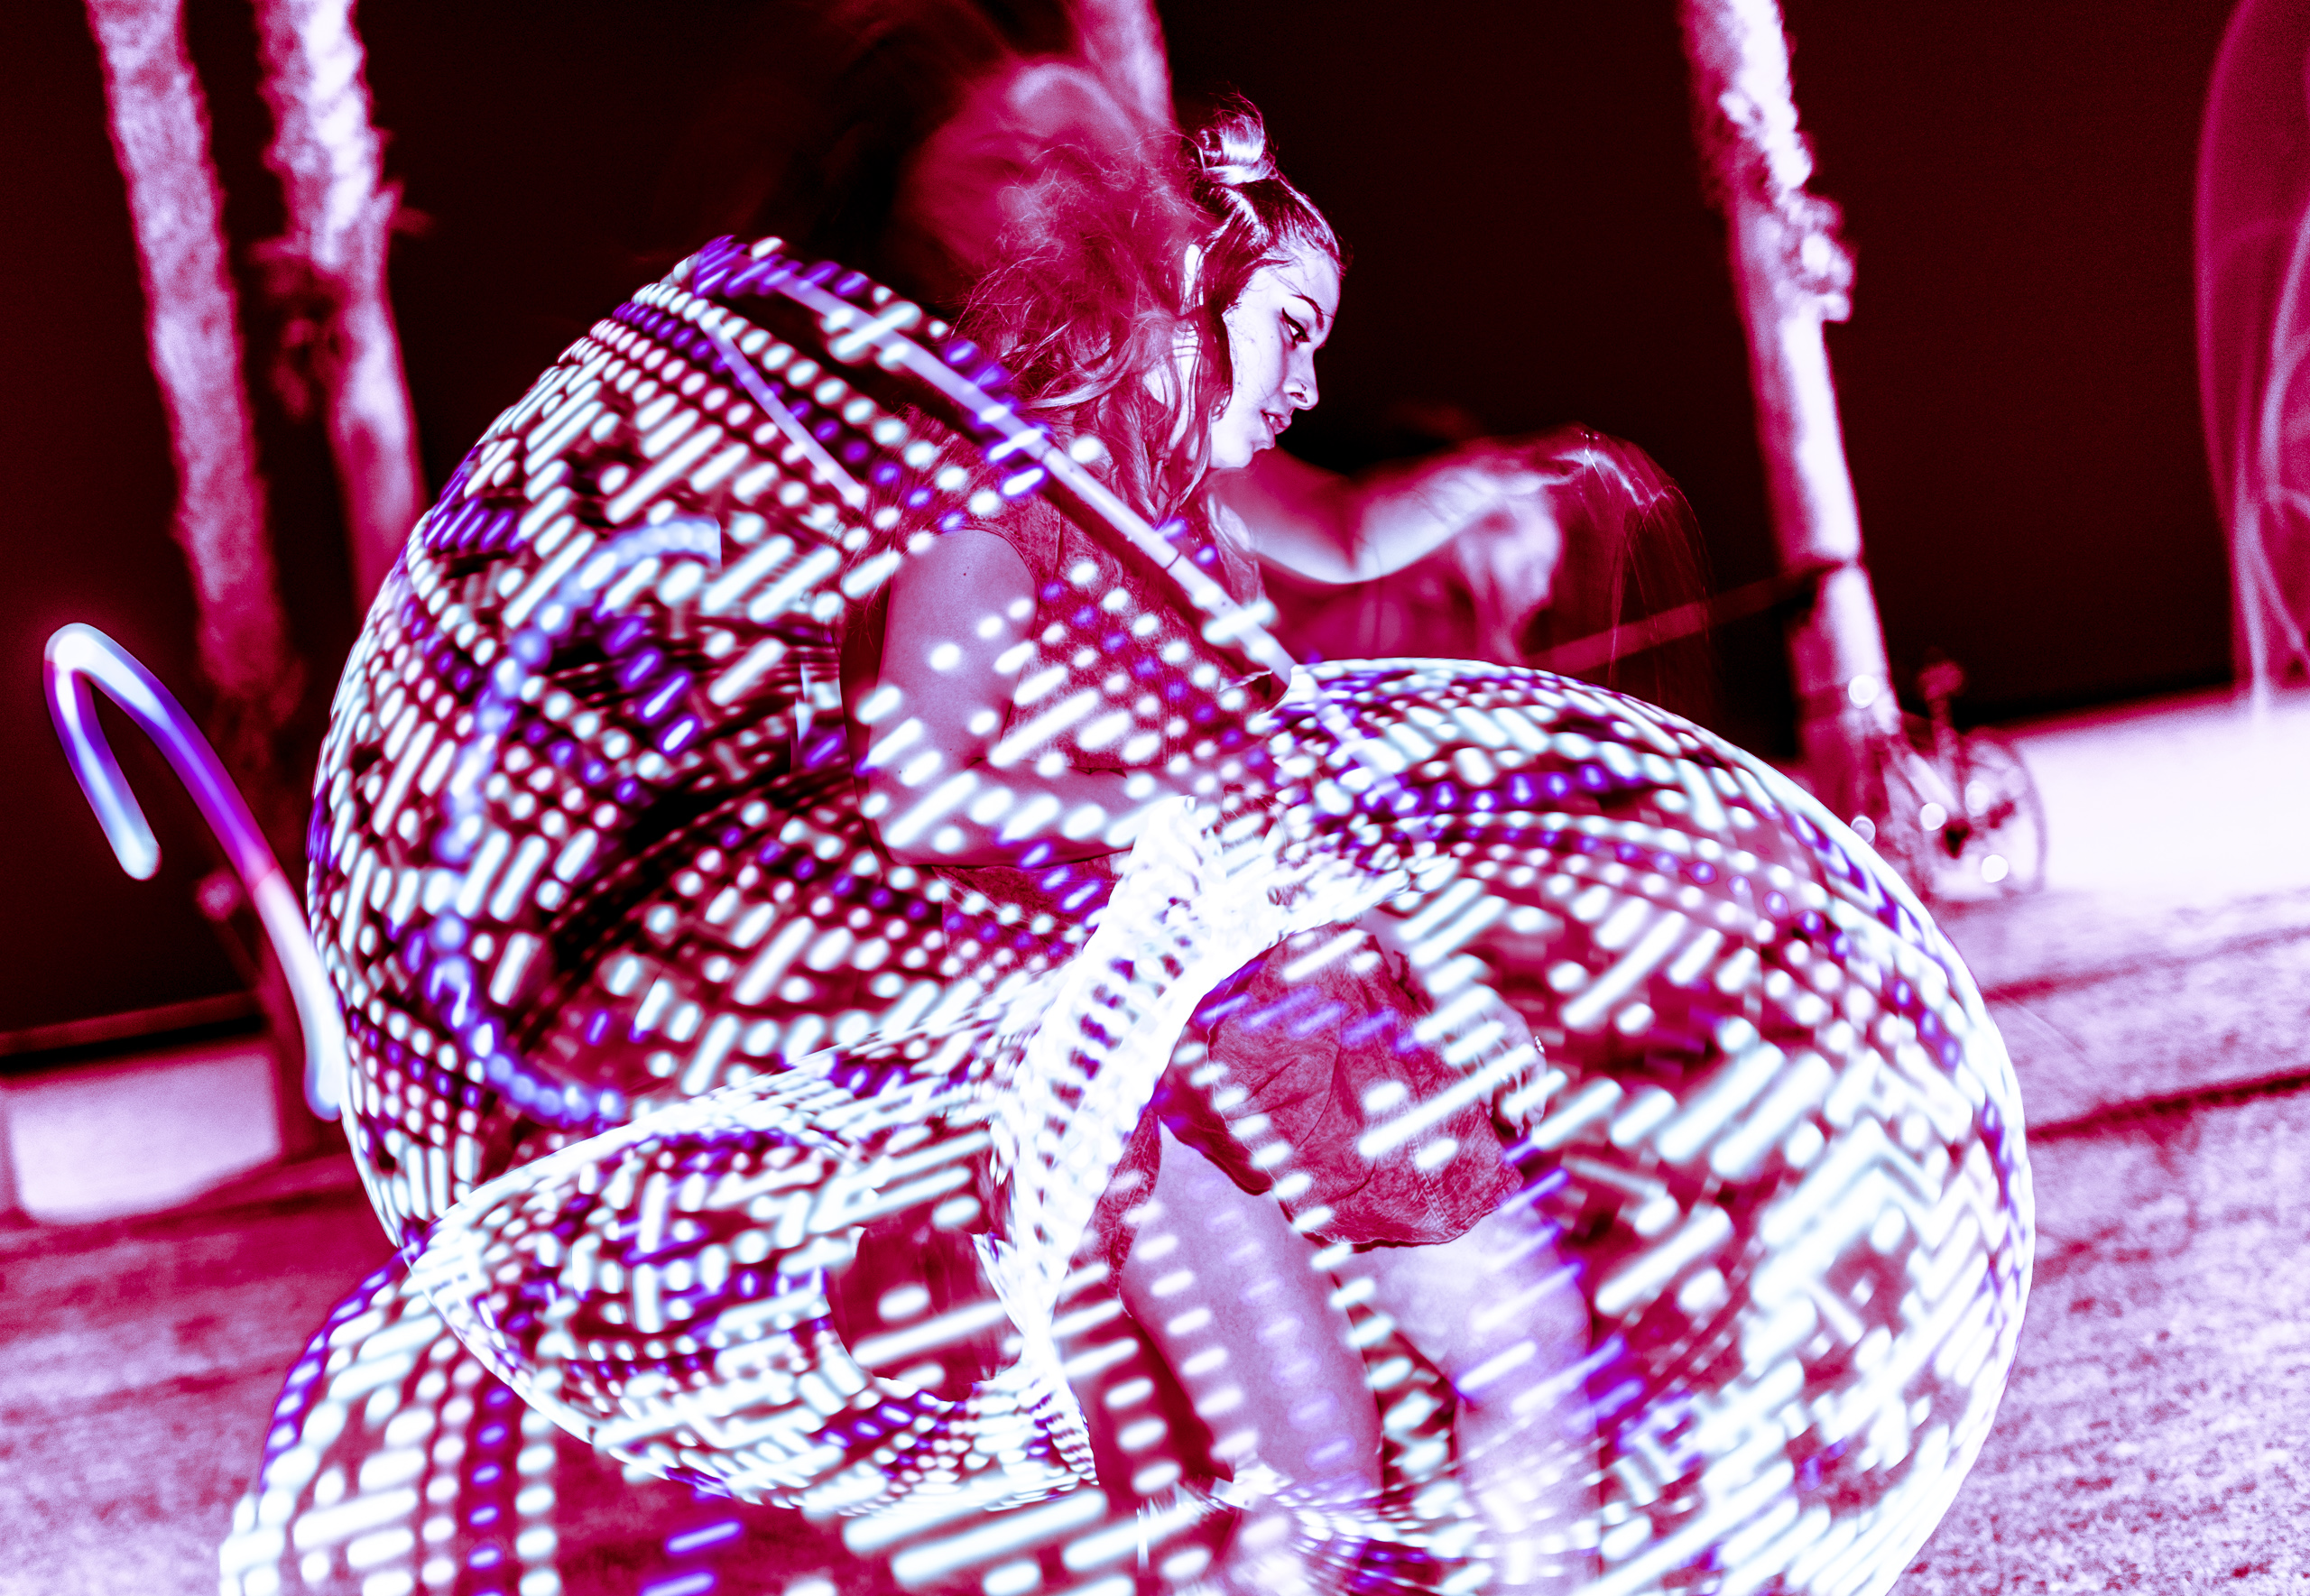 Alli Wolf, aka @wolfamongweeds, Los Angeles based DJ, Producer, Flow Artist, Techno, dancing with an LED hoop at Venice Glow Flow in the park at Venice Beach, CA